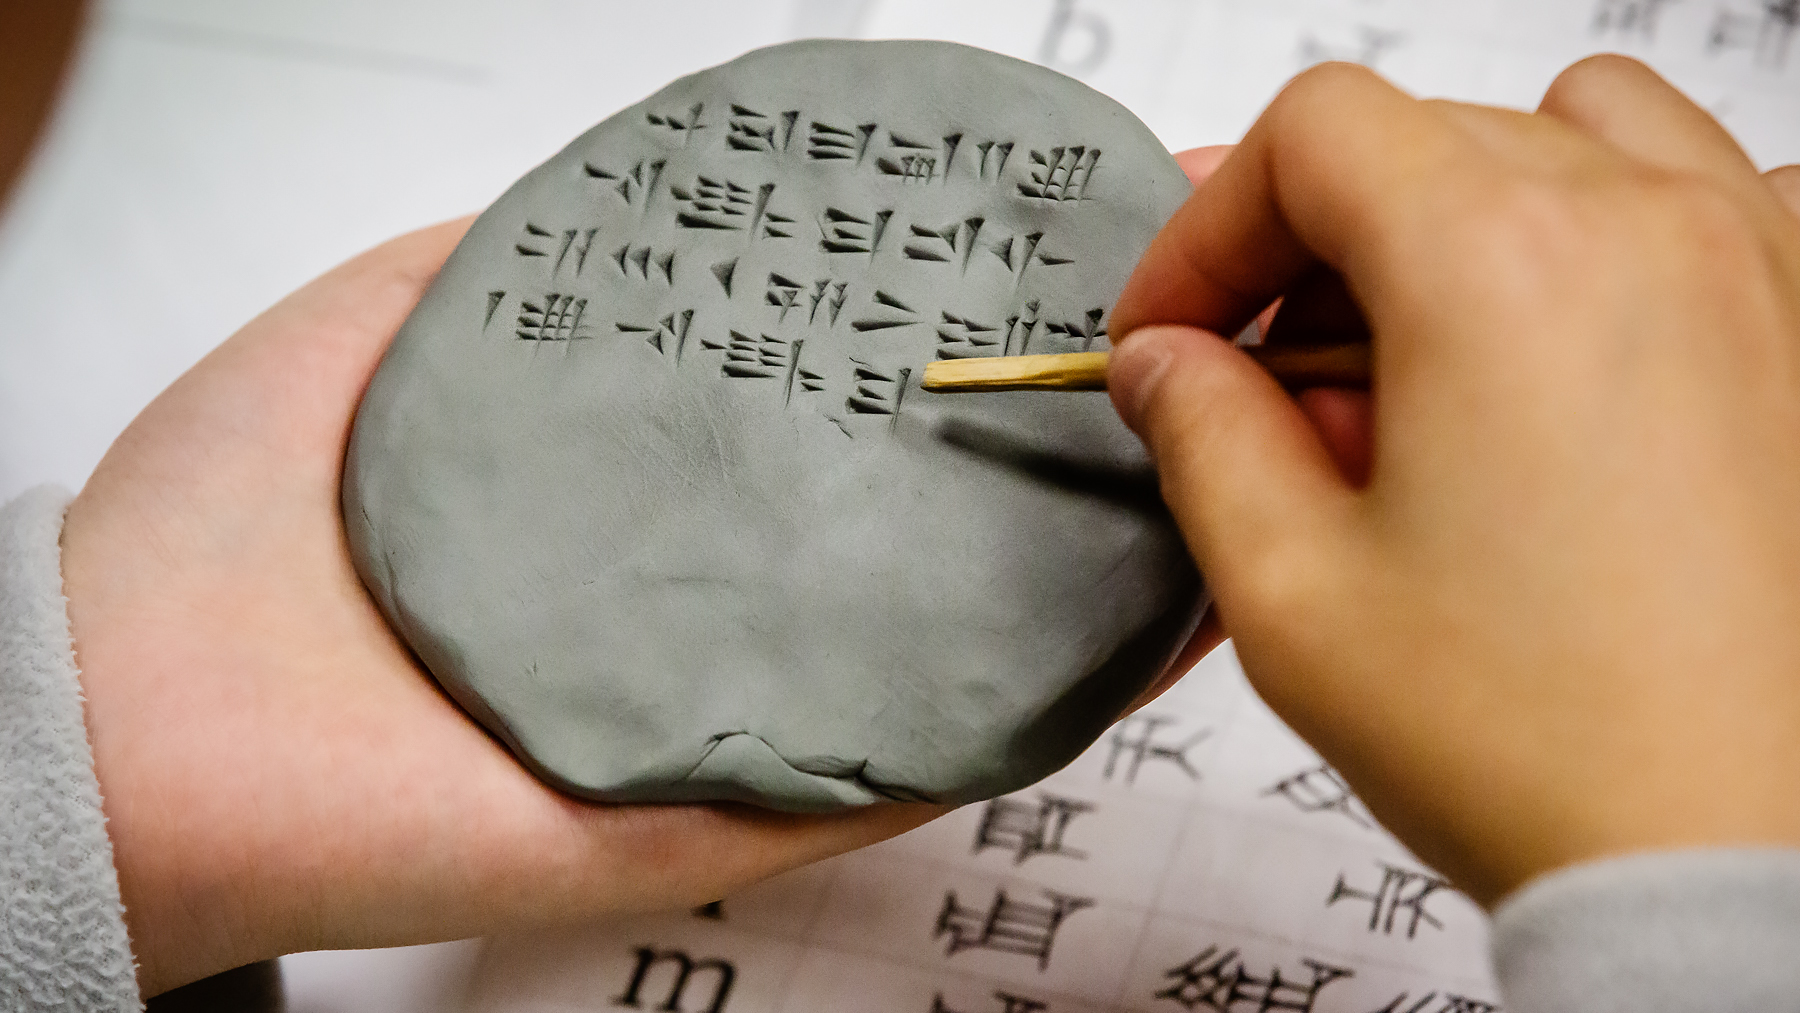 A student writes in Hittite using cuneiform symbols pressed into clay. Photo by L. B. Stauffer